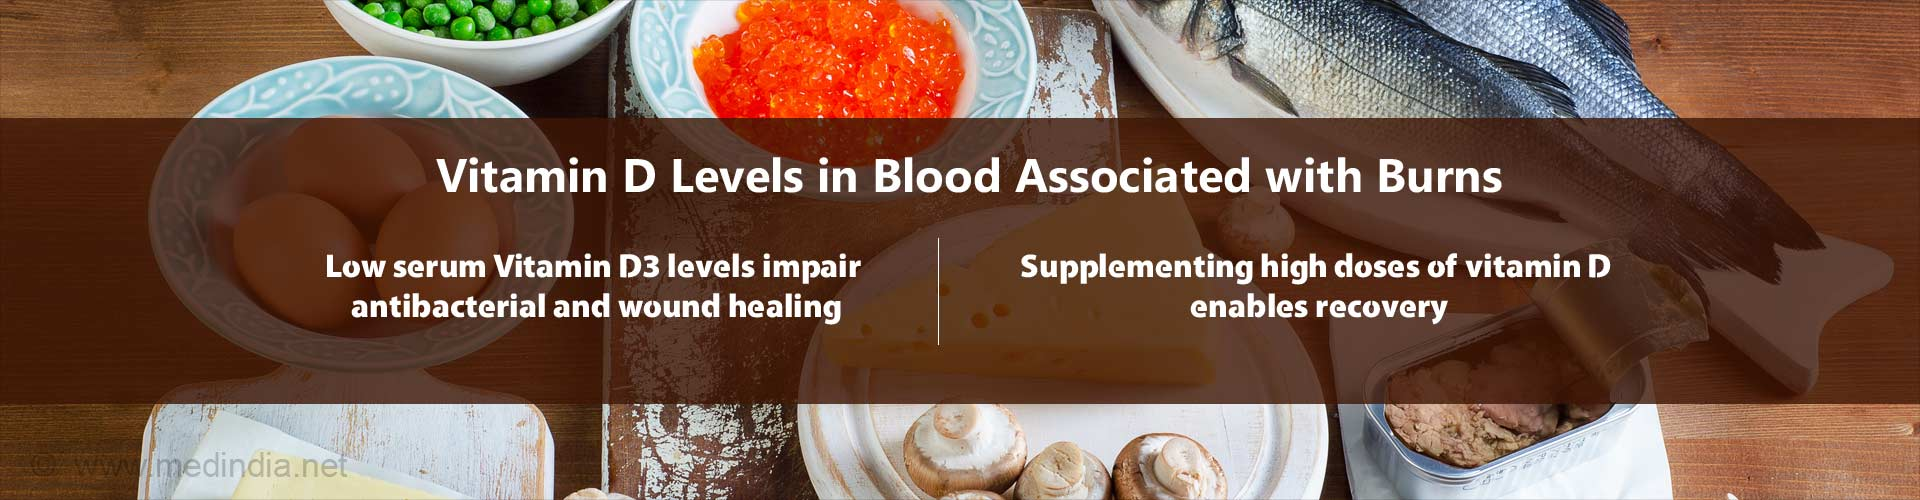 Vitamin D Levels Associated With Wound Healing in Burns